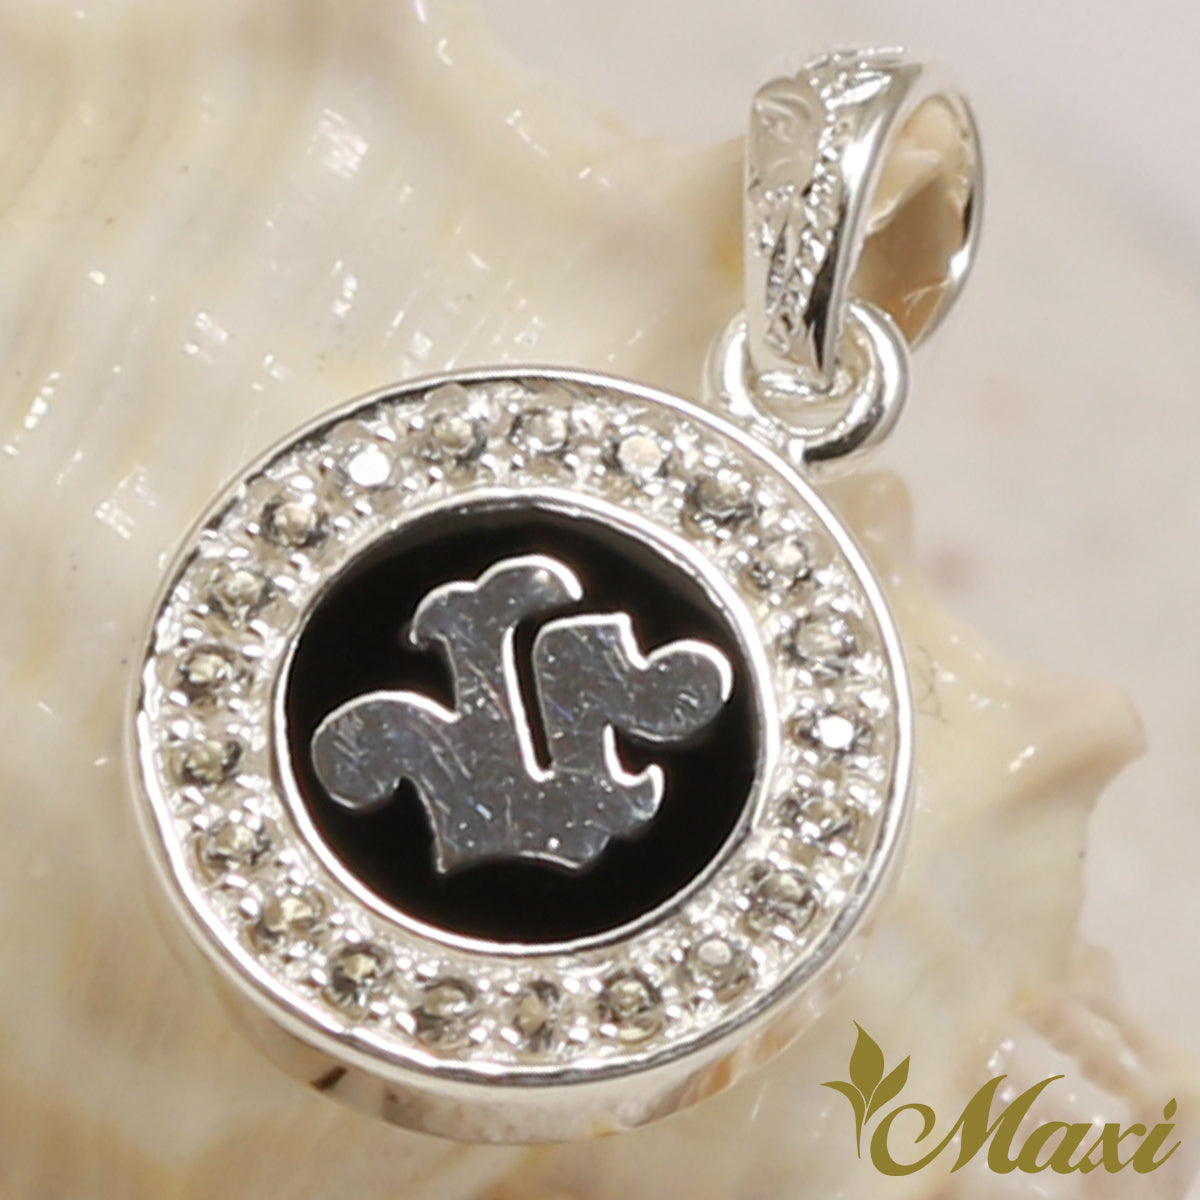 Silver 925 round initial pendant with crystal stone setting hand silver 925 round initial pendant with crystal stone setting hand engraved traditional hawaiian design mozeypictures Gallery